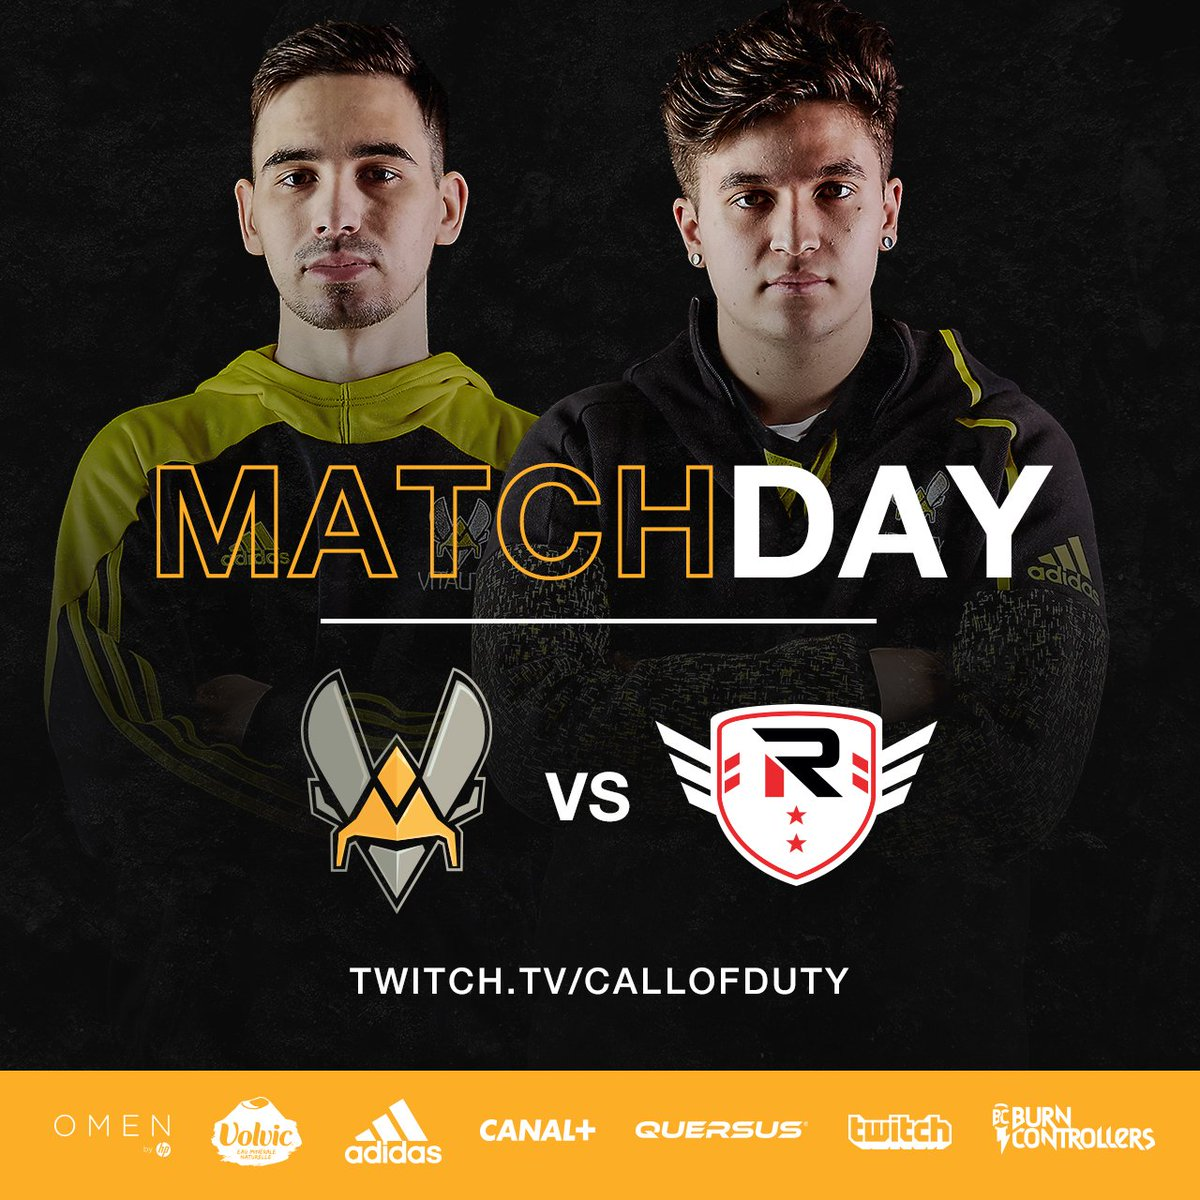 We're opening the Call of Duty @CODWorldLeague tonight at 22h/10PM (Paris time) vs. @TheRiseNation. Make sure to tune in and support the squad #VforVictory https://t.co/vvvp2EDmoa